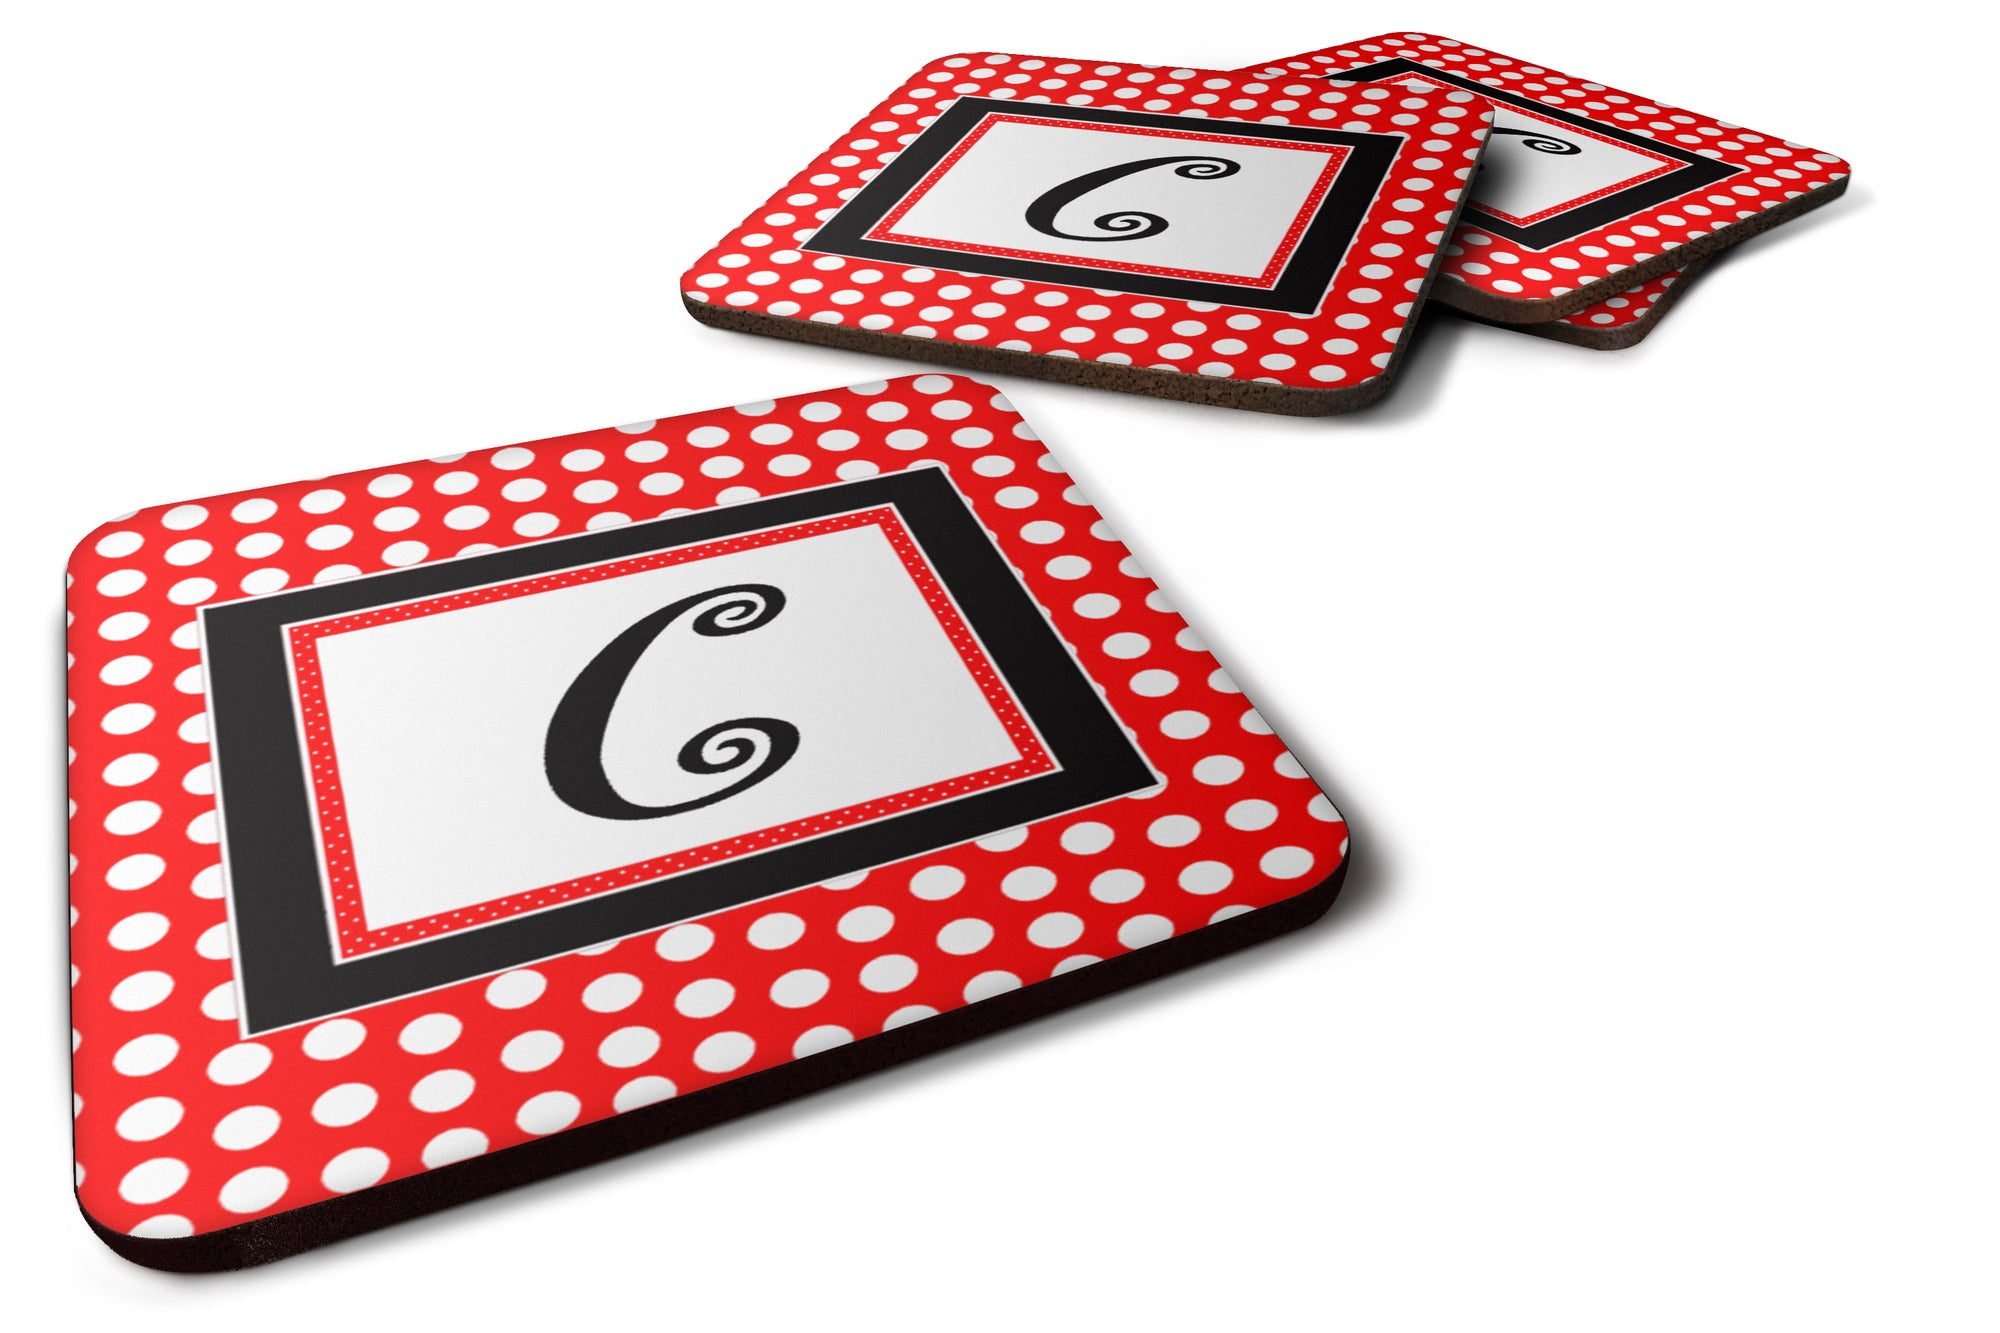 Set of 4 Monogram - Red Black Polka Dots Foam Coasters Initial Letter C by Caroline's Treasures